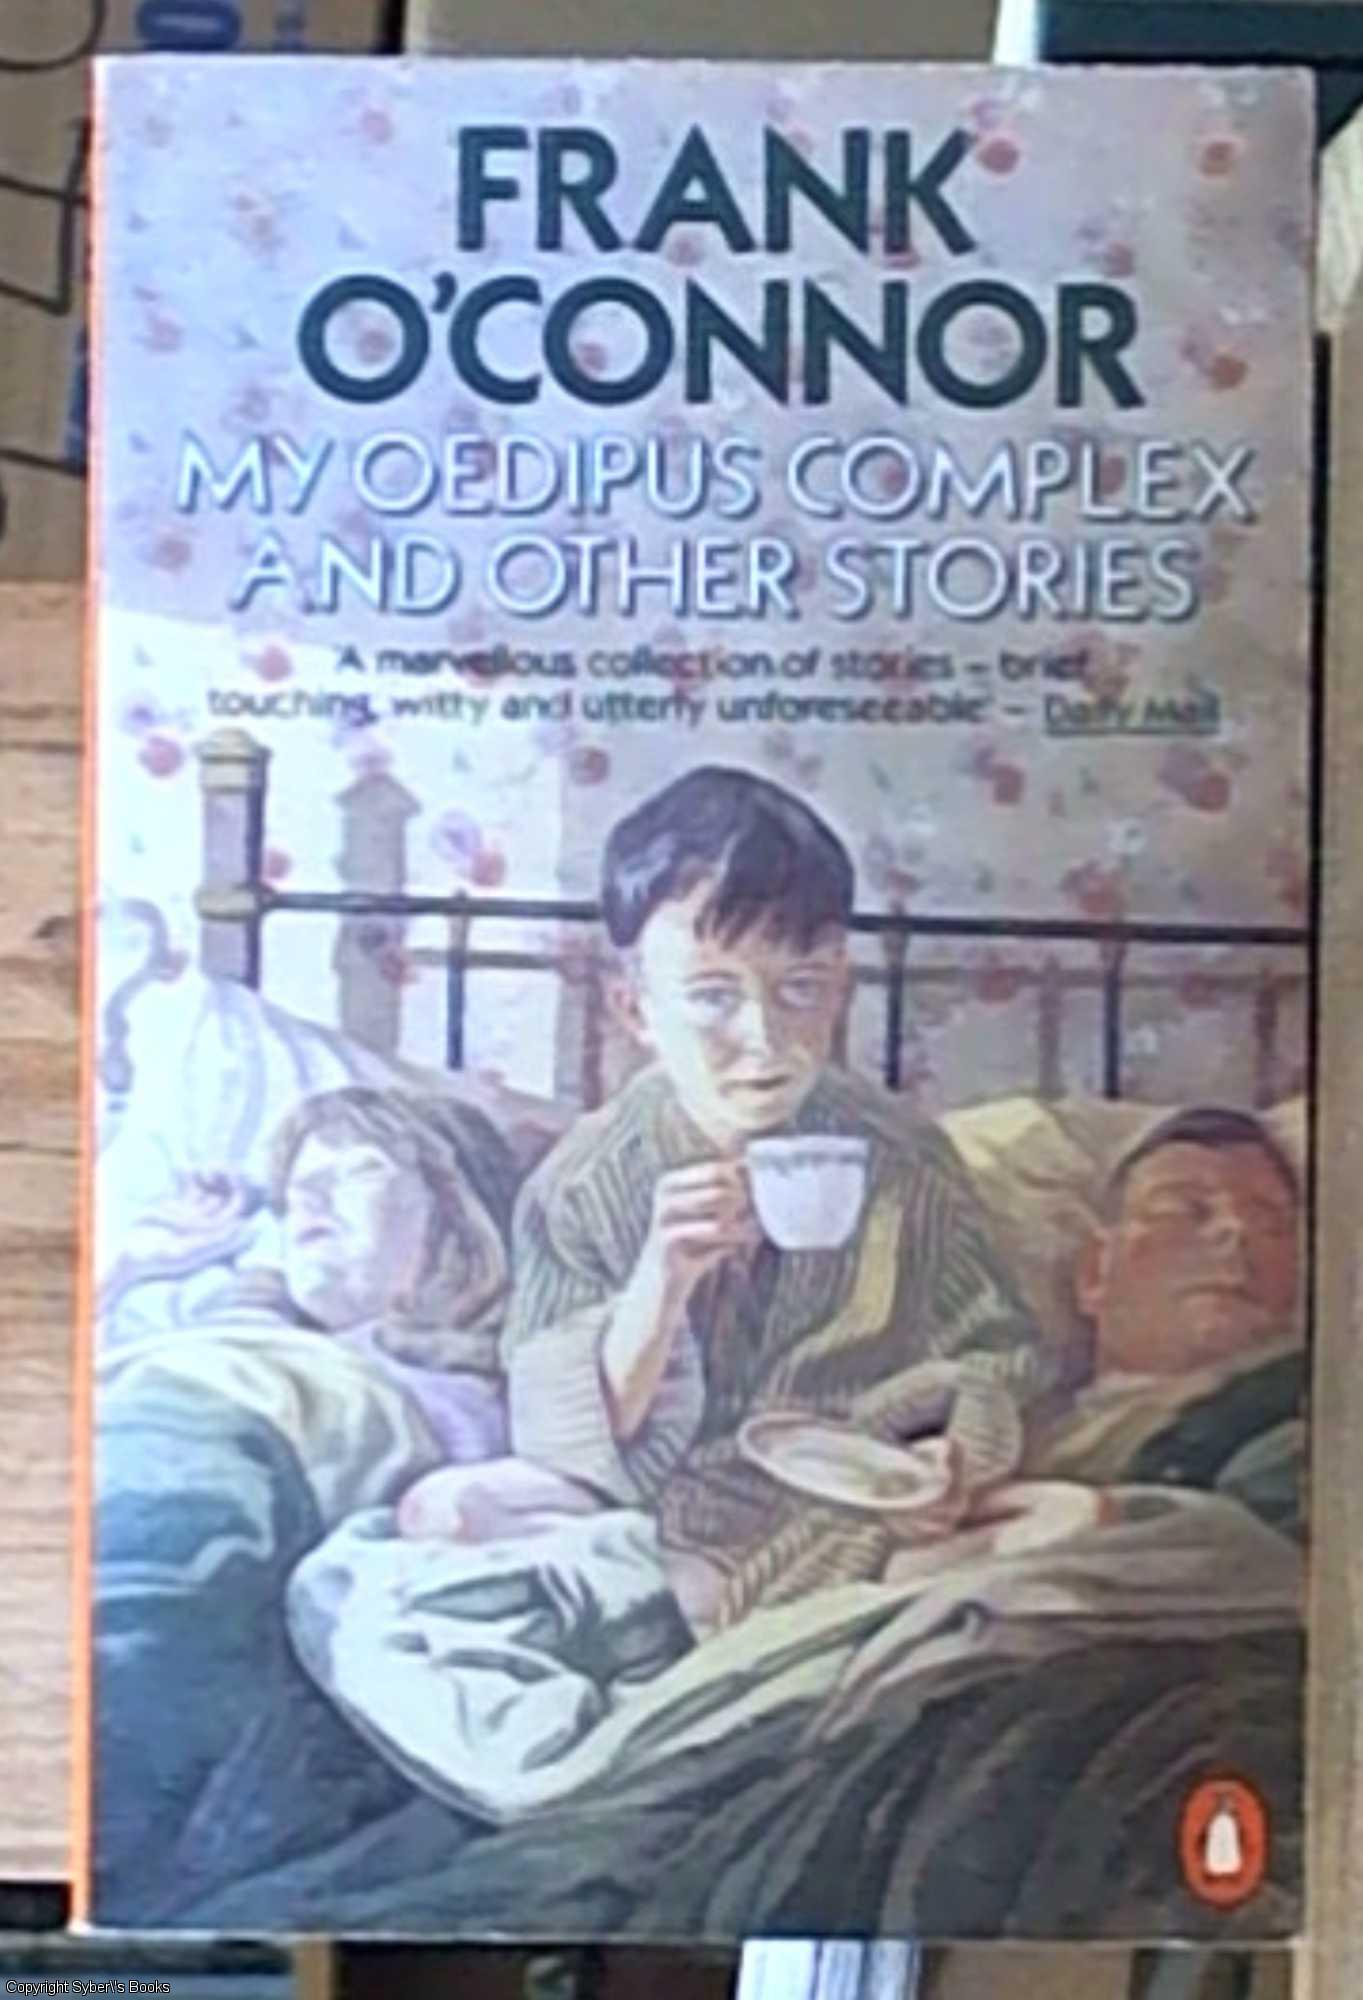 my oedipus complex frank o connor point view essay include Frank o'connor had two names and lived a life of many facets yet everything he did, however unexpected or even contradictory it might seem, was informed by the same single-minded and passionate integrity.